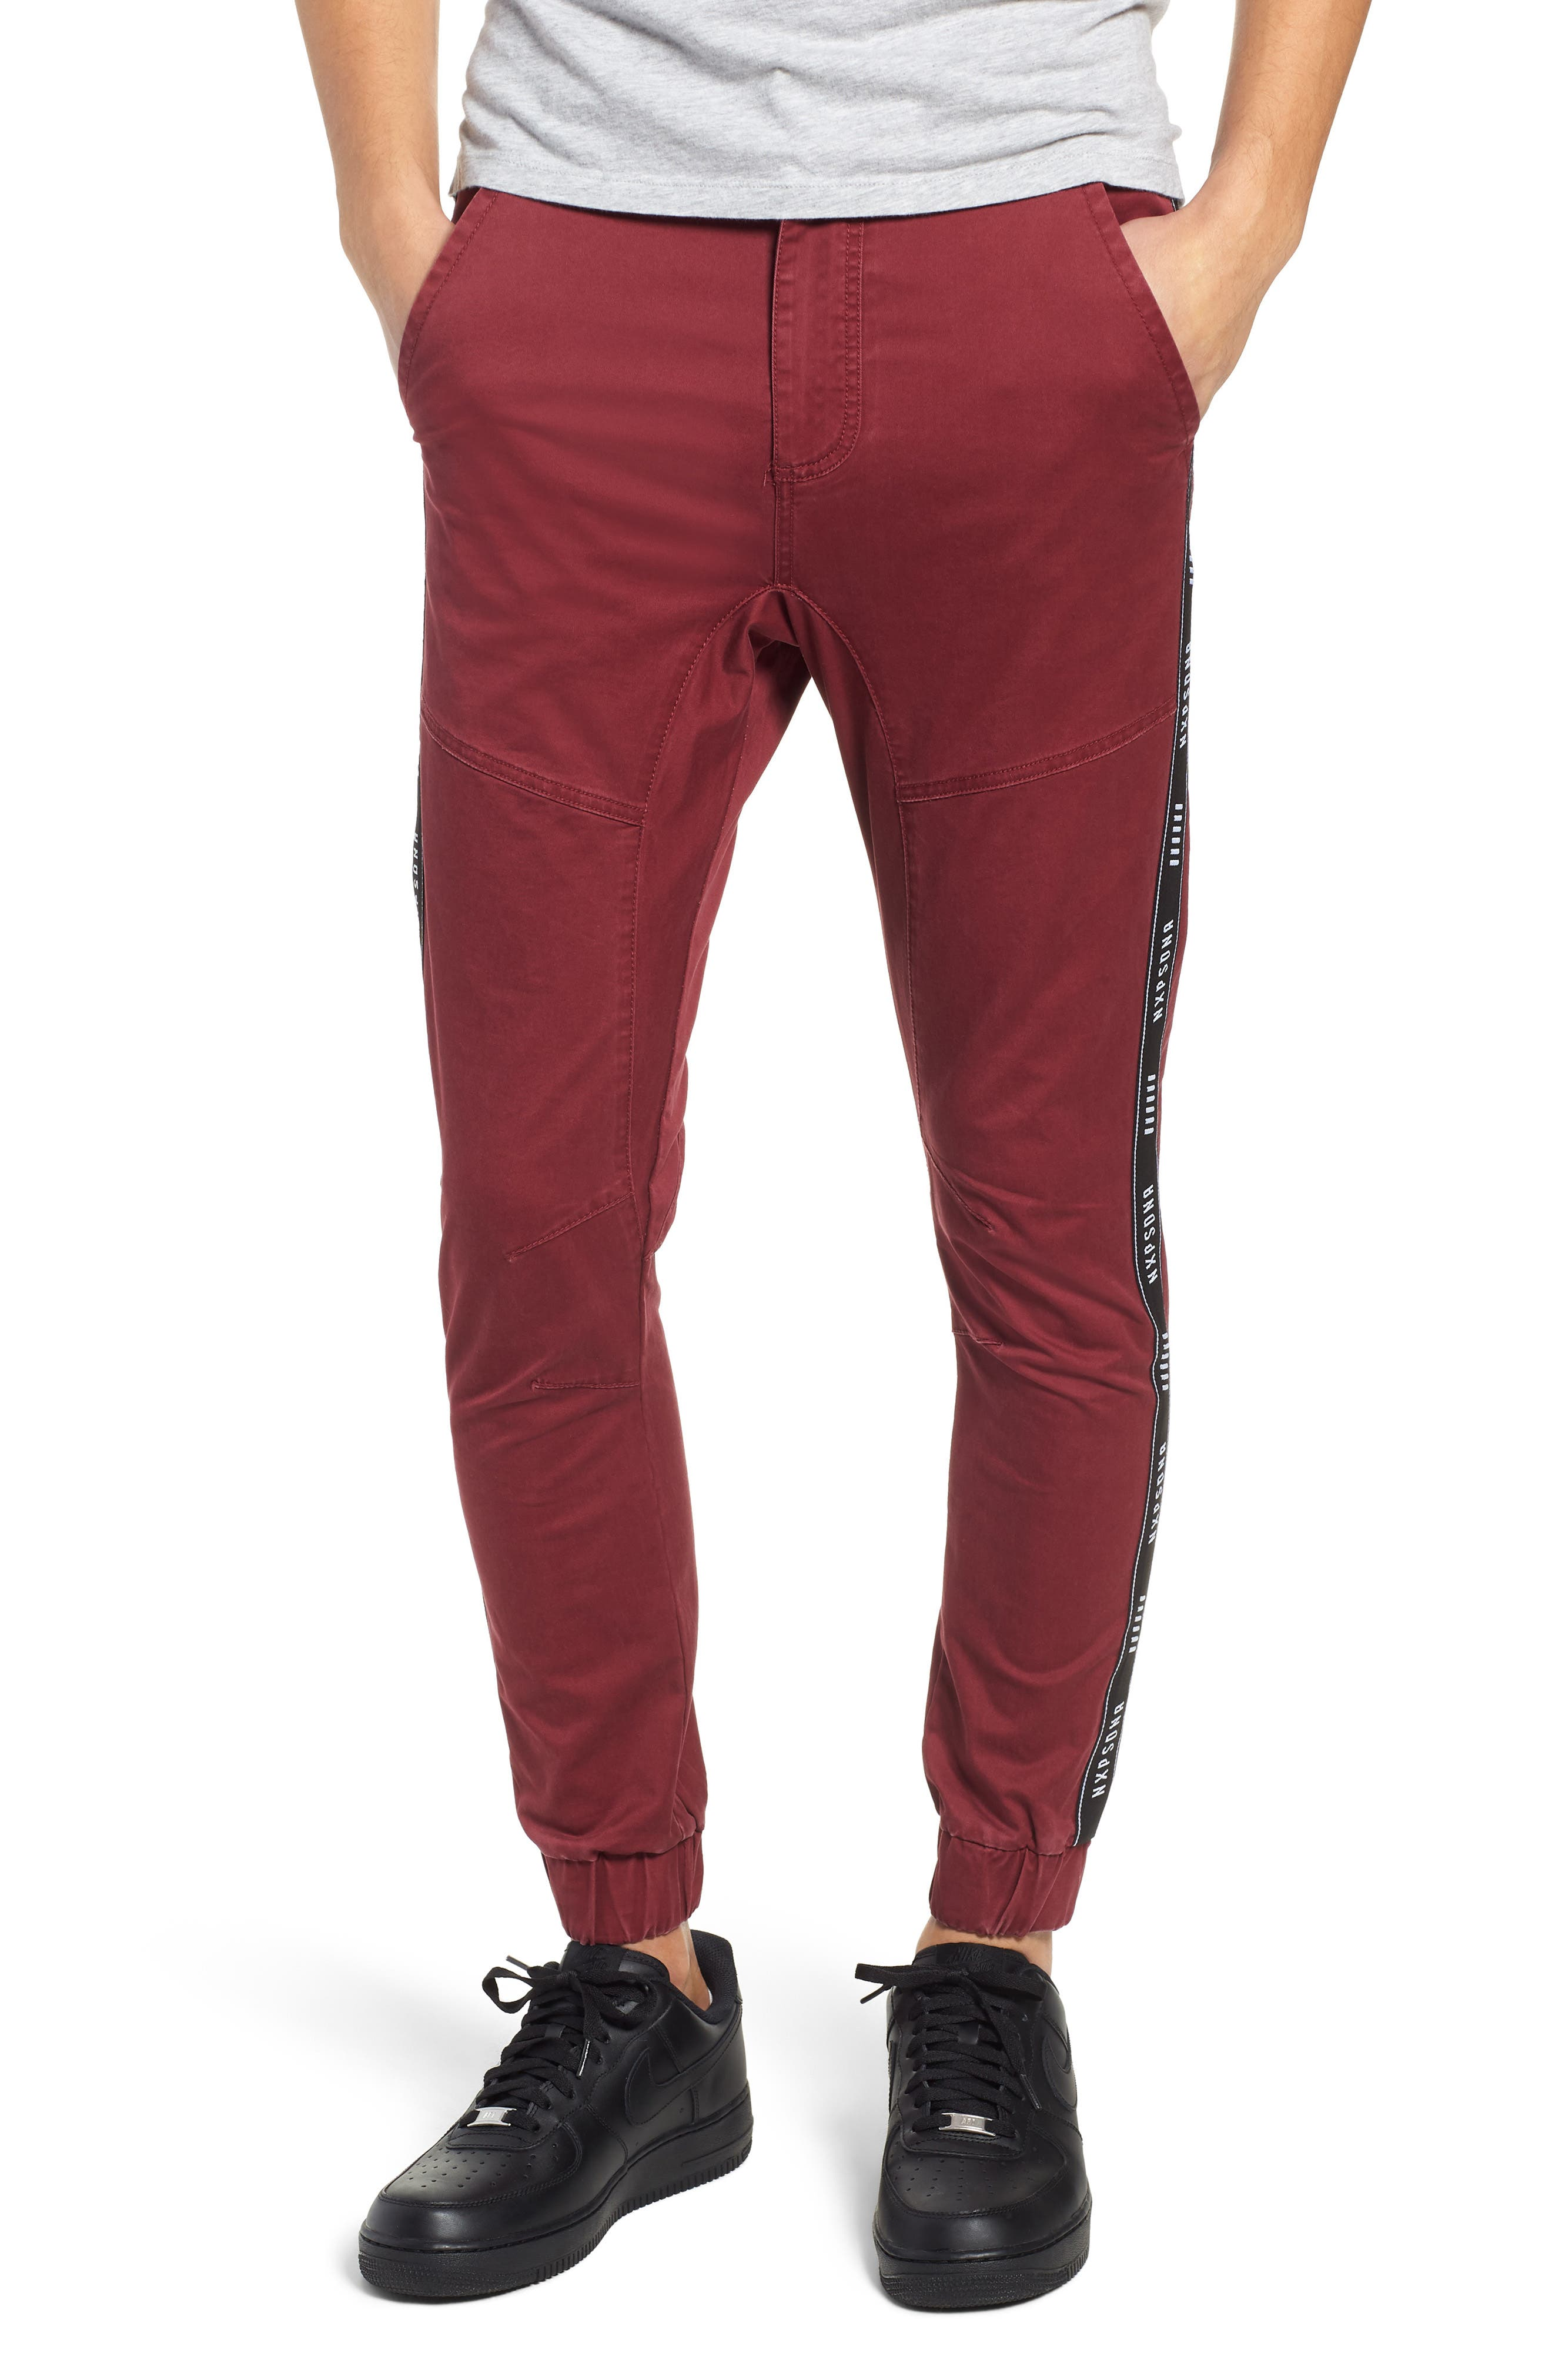 Firebrand Taped Chinos,                         Main,                         color, BORDEAUX